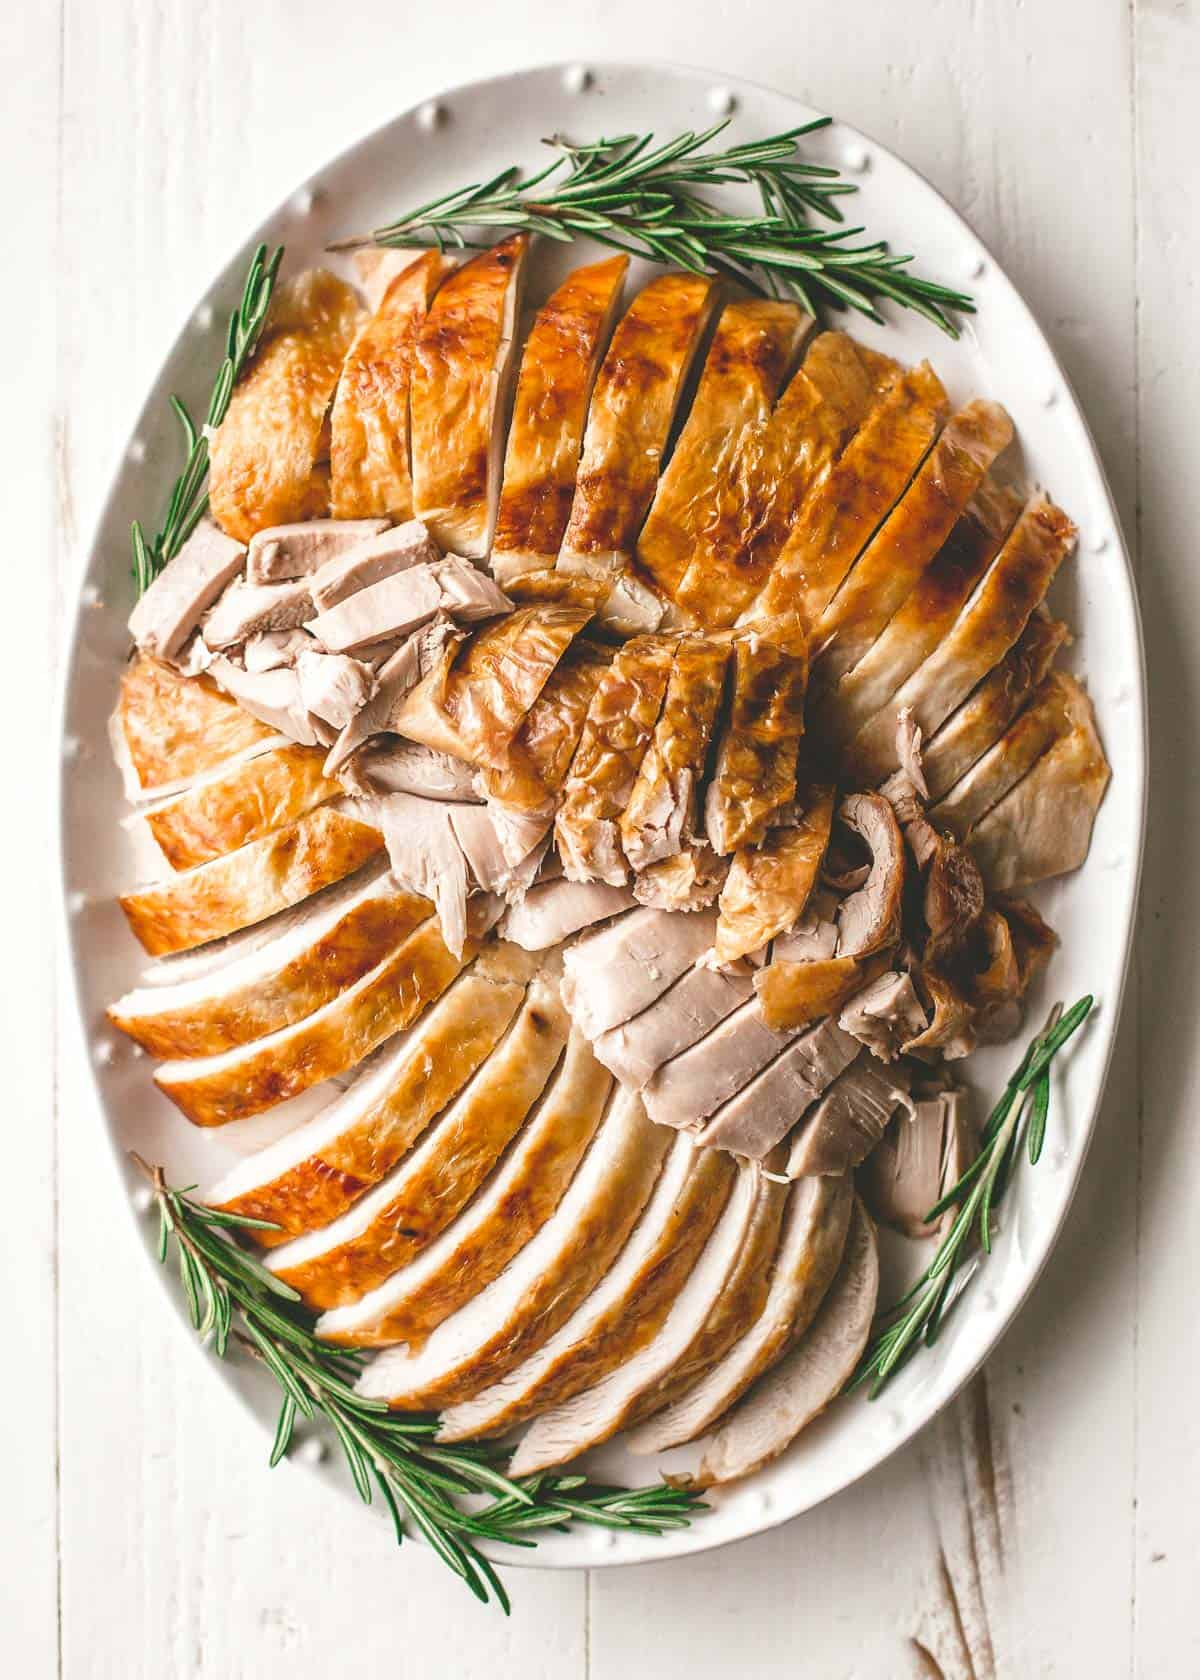 turkey slices on platter with rosemary sprigs